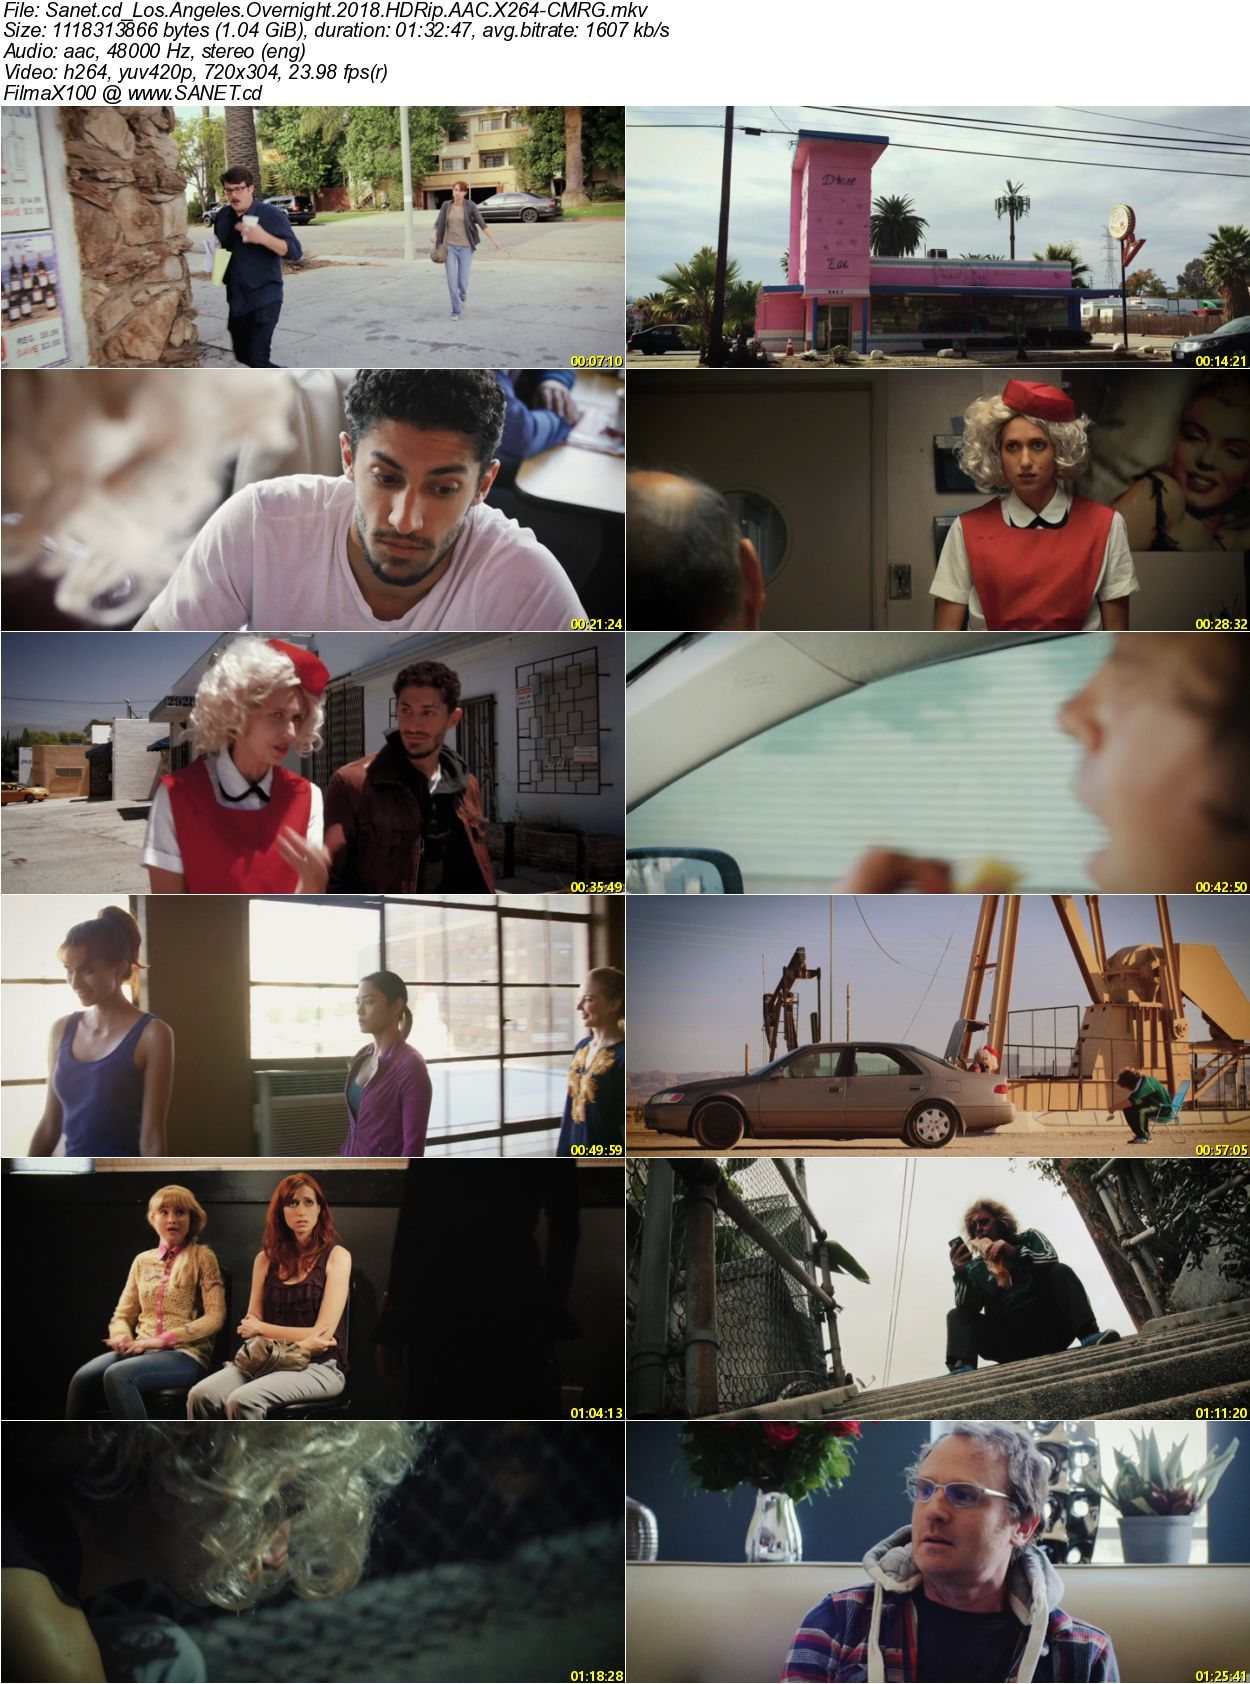 download los angeles overnight 2018 hdrip aac x264 cmrg